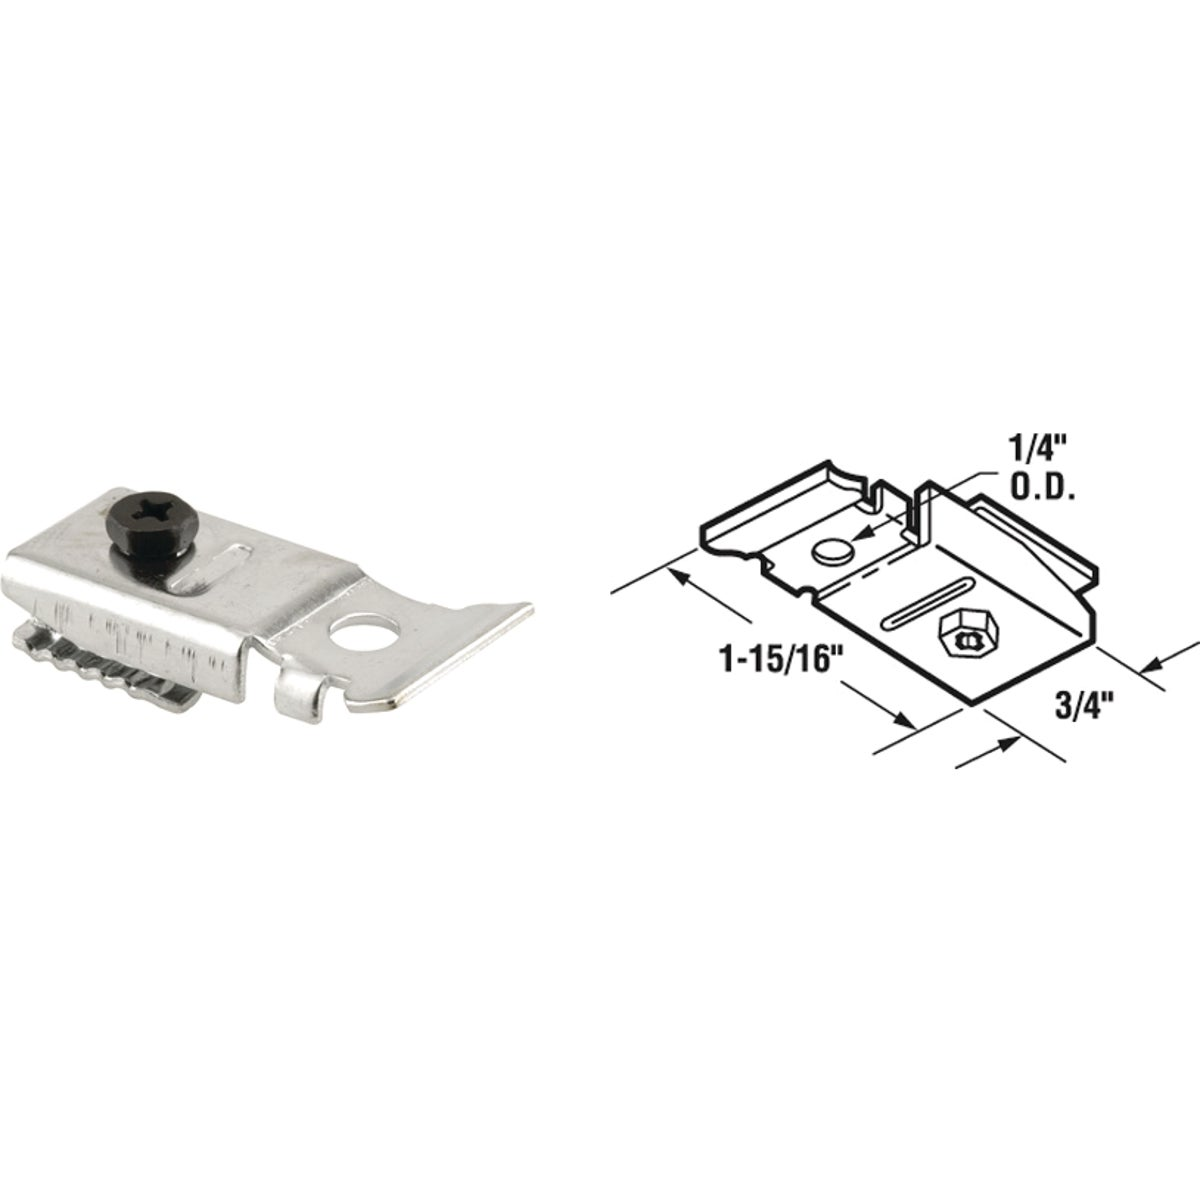 TOP PIVOT BRACKET - 16554 by Prime Line Products